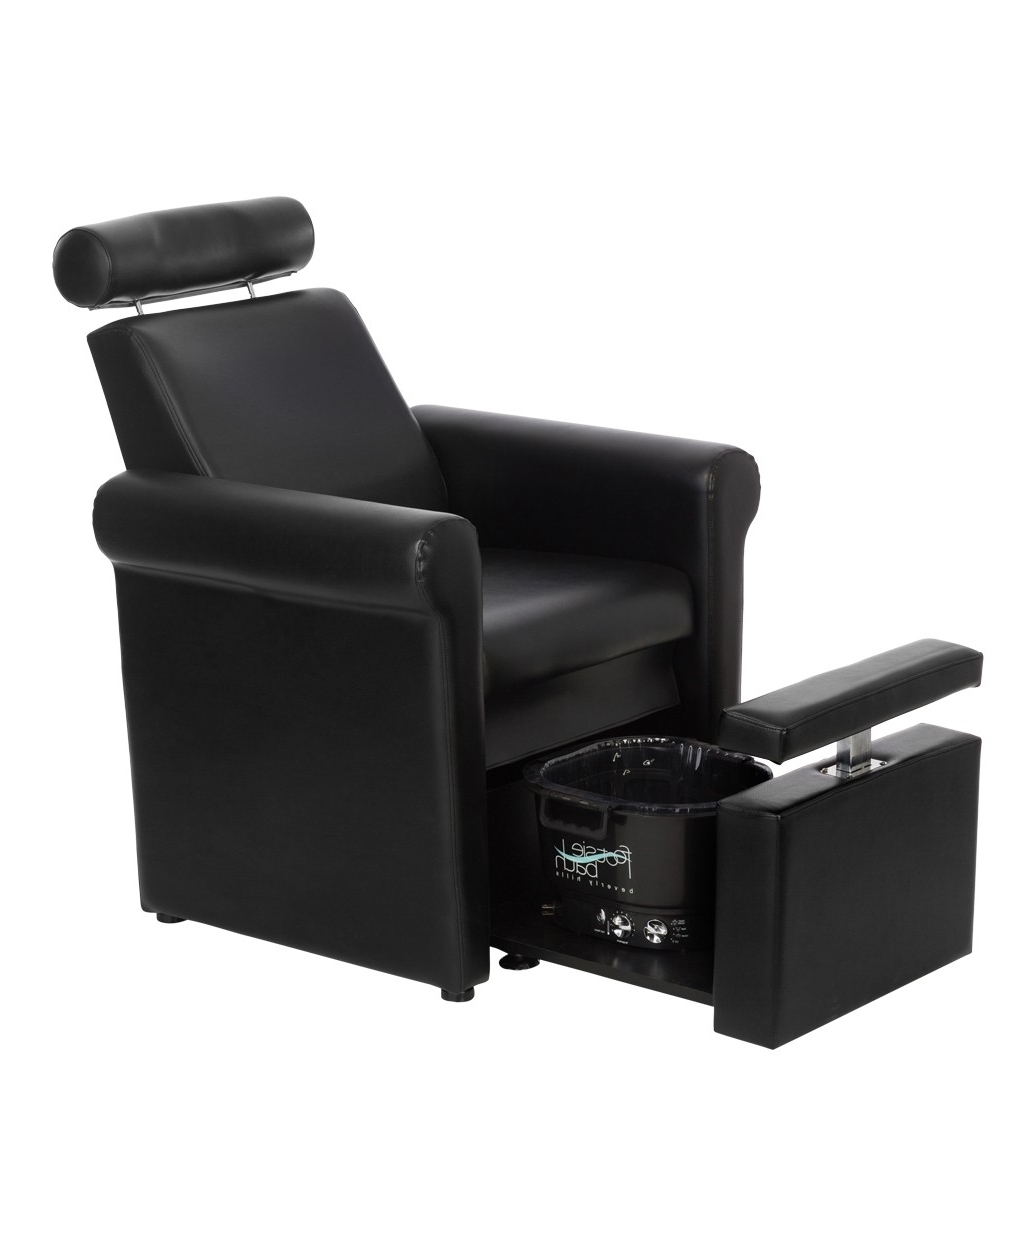 Favorite Sofa Pedicure Chairs Regarding Pedicure Stool With Footrest: Mona Lisa Pedicure Chair (View 5 of 20)